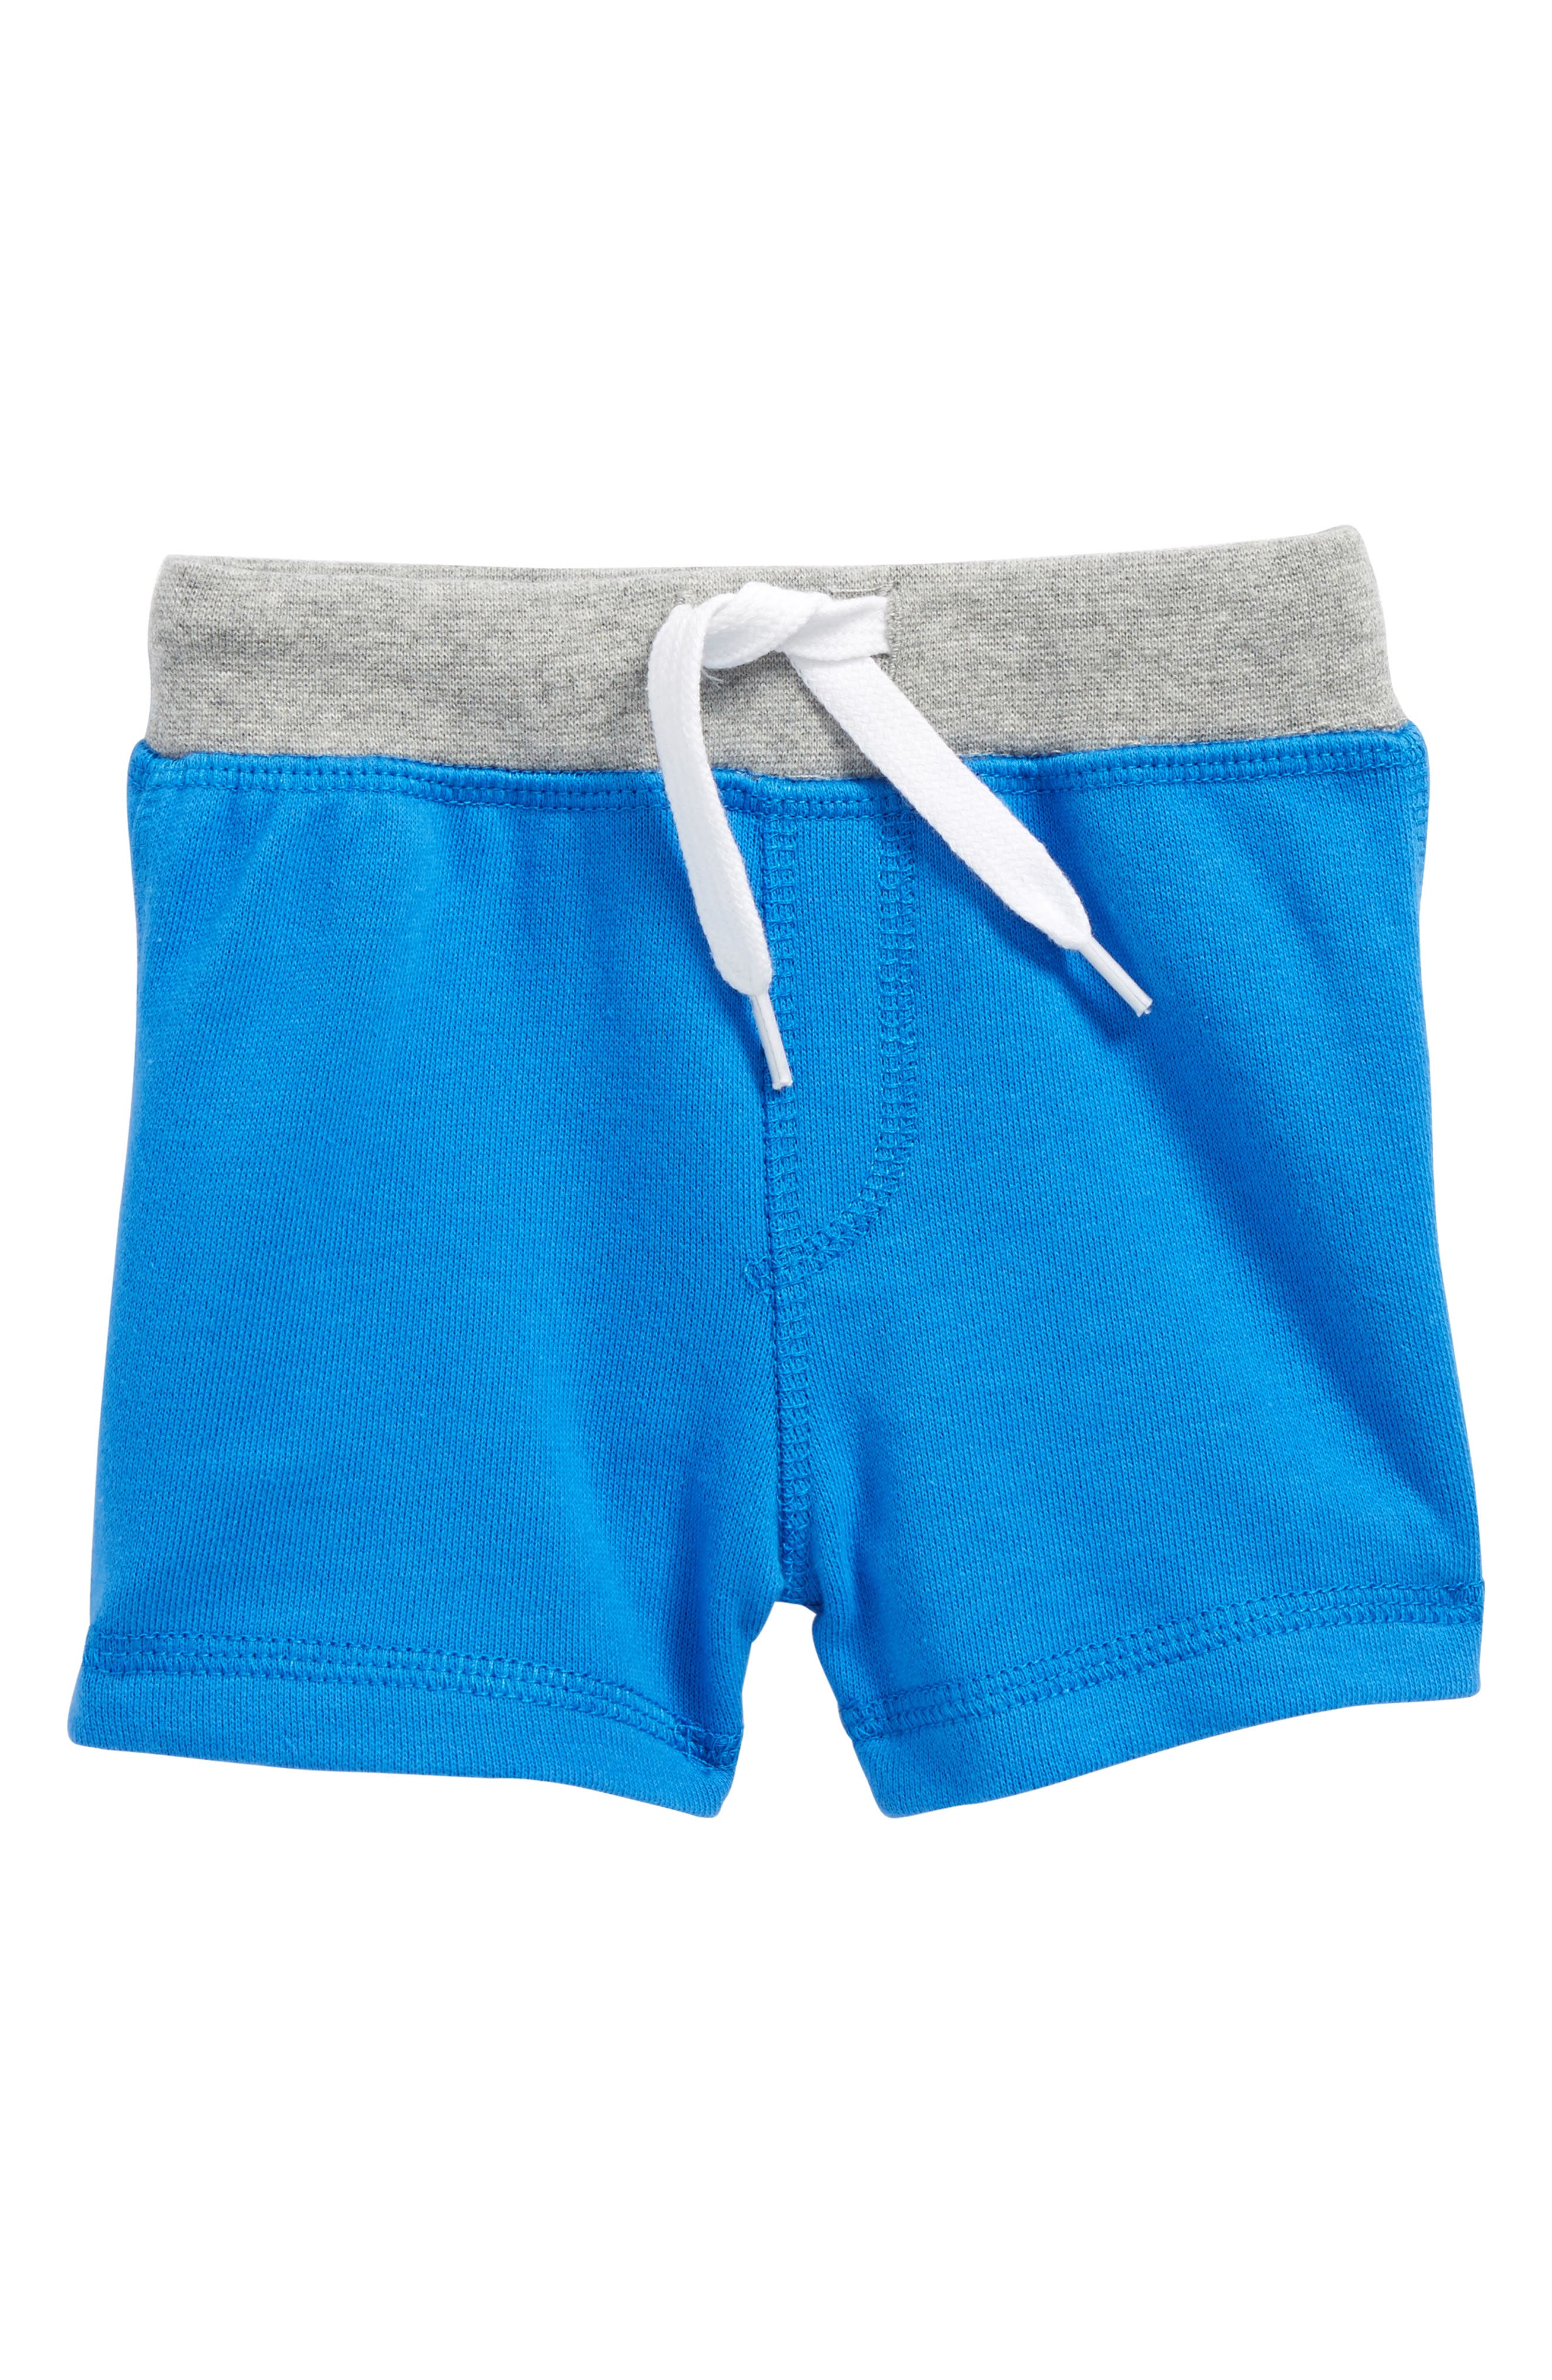 Pull On Shorts,                         Main,                         color,